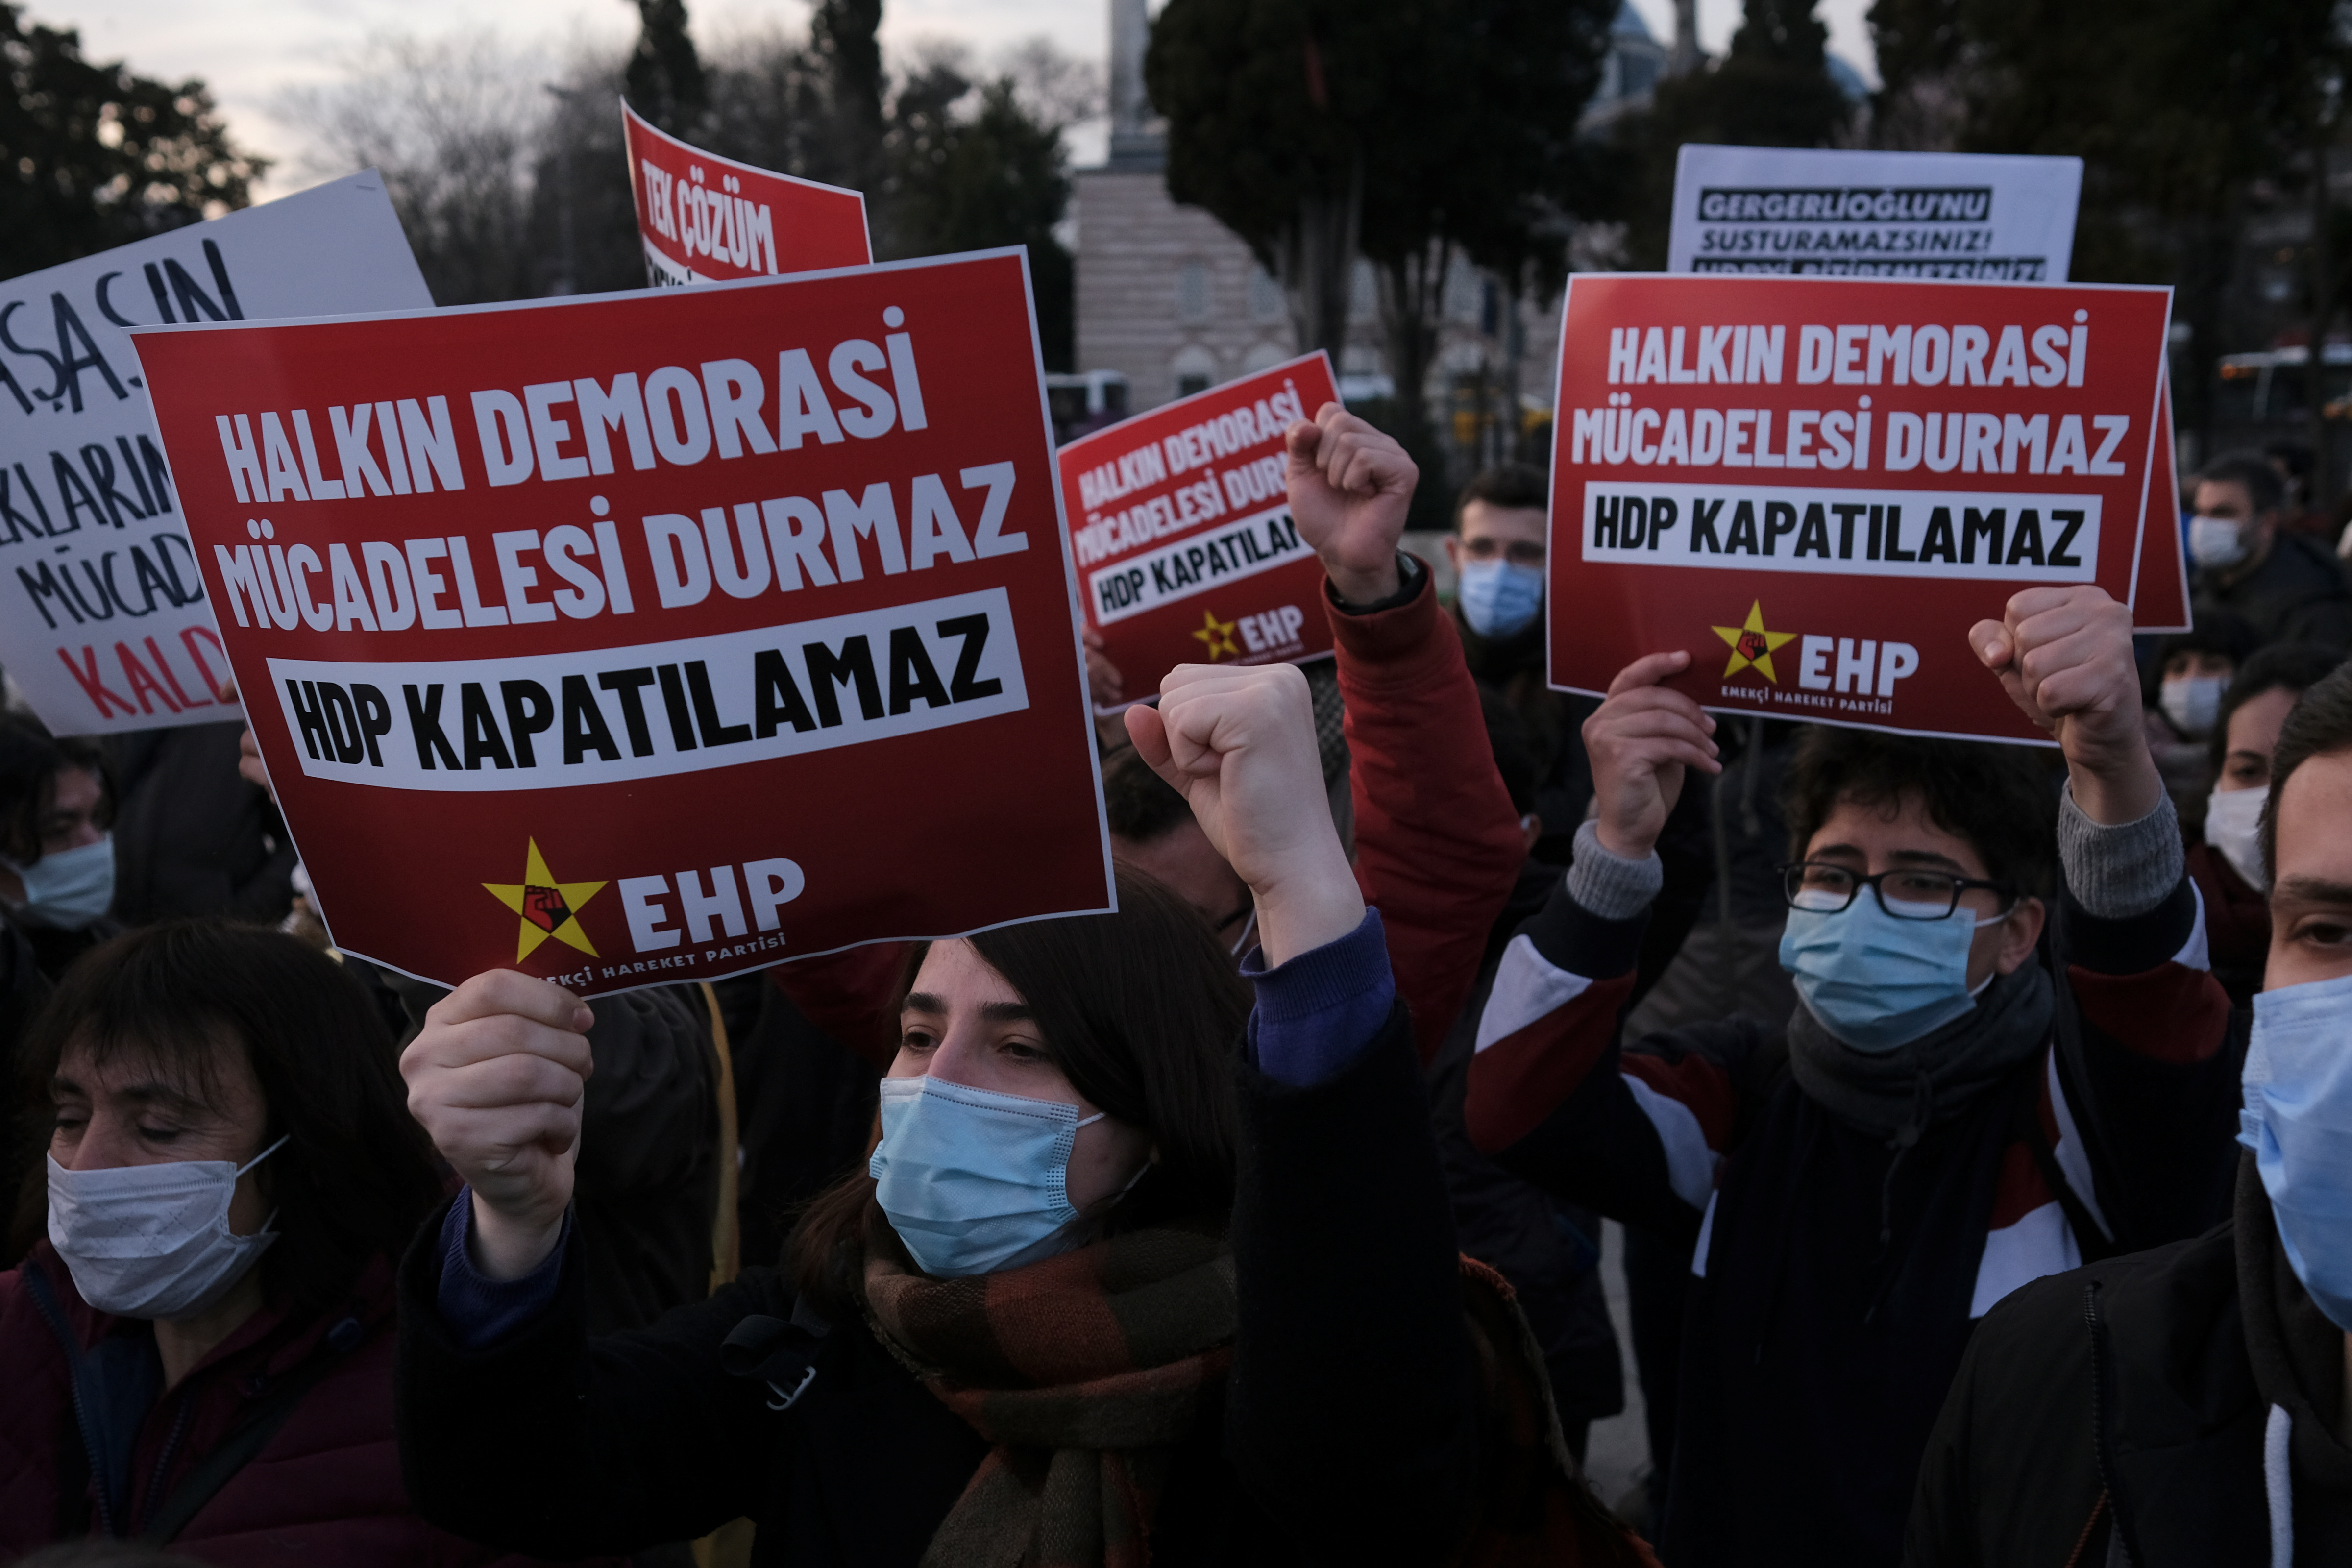 People shout slogans during a demonstration to protest against the court case launched for closure of the pro-Kurdish opposition Peoples' Democratic Party (HDP) in Istanbul, Turkey March 18, 2021. Placards read: